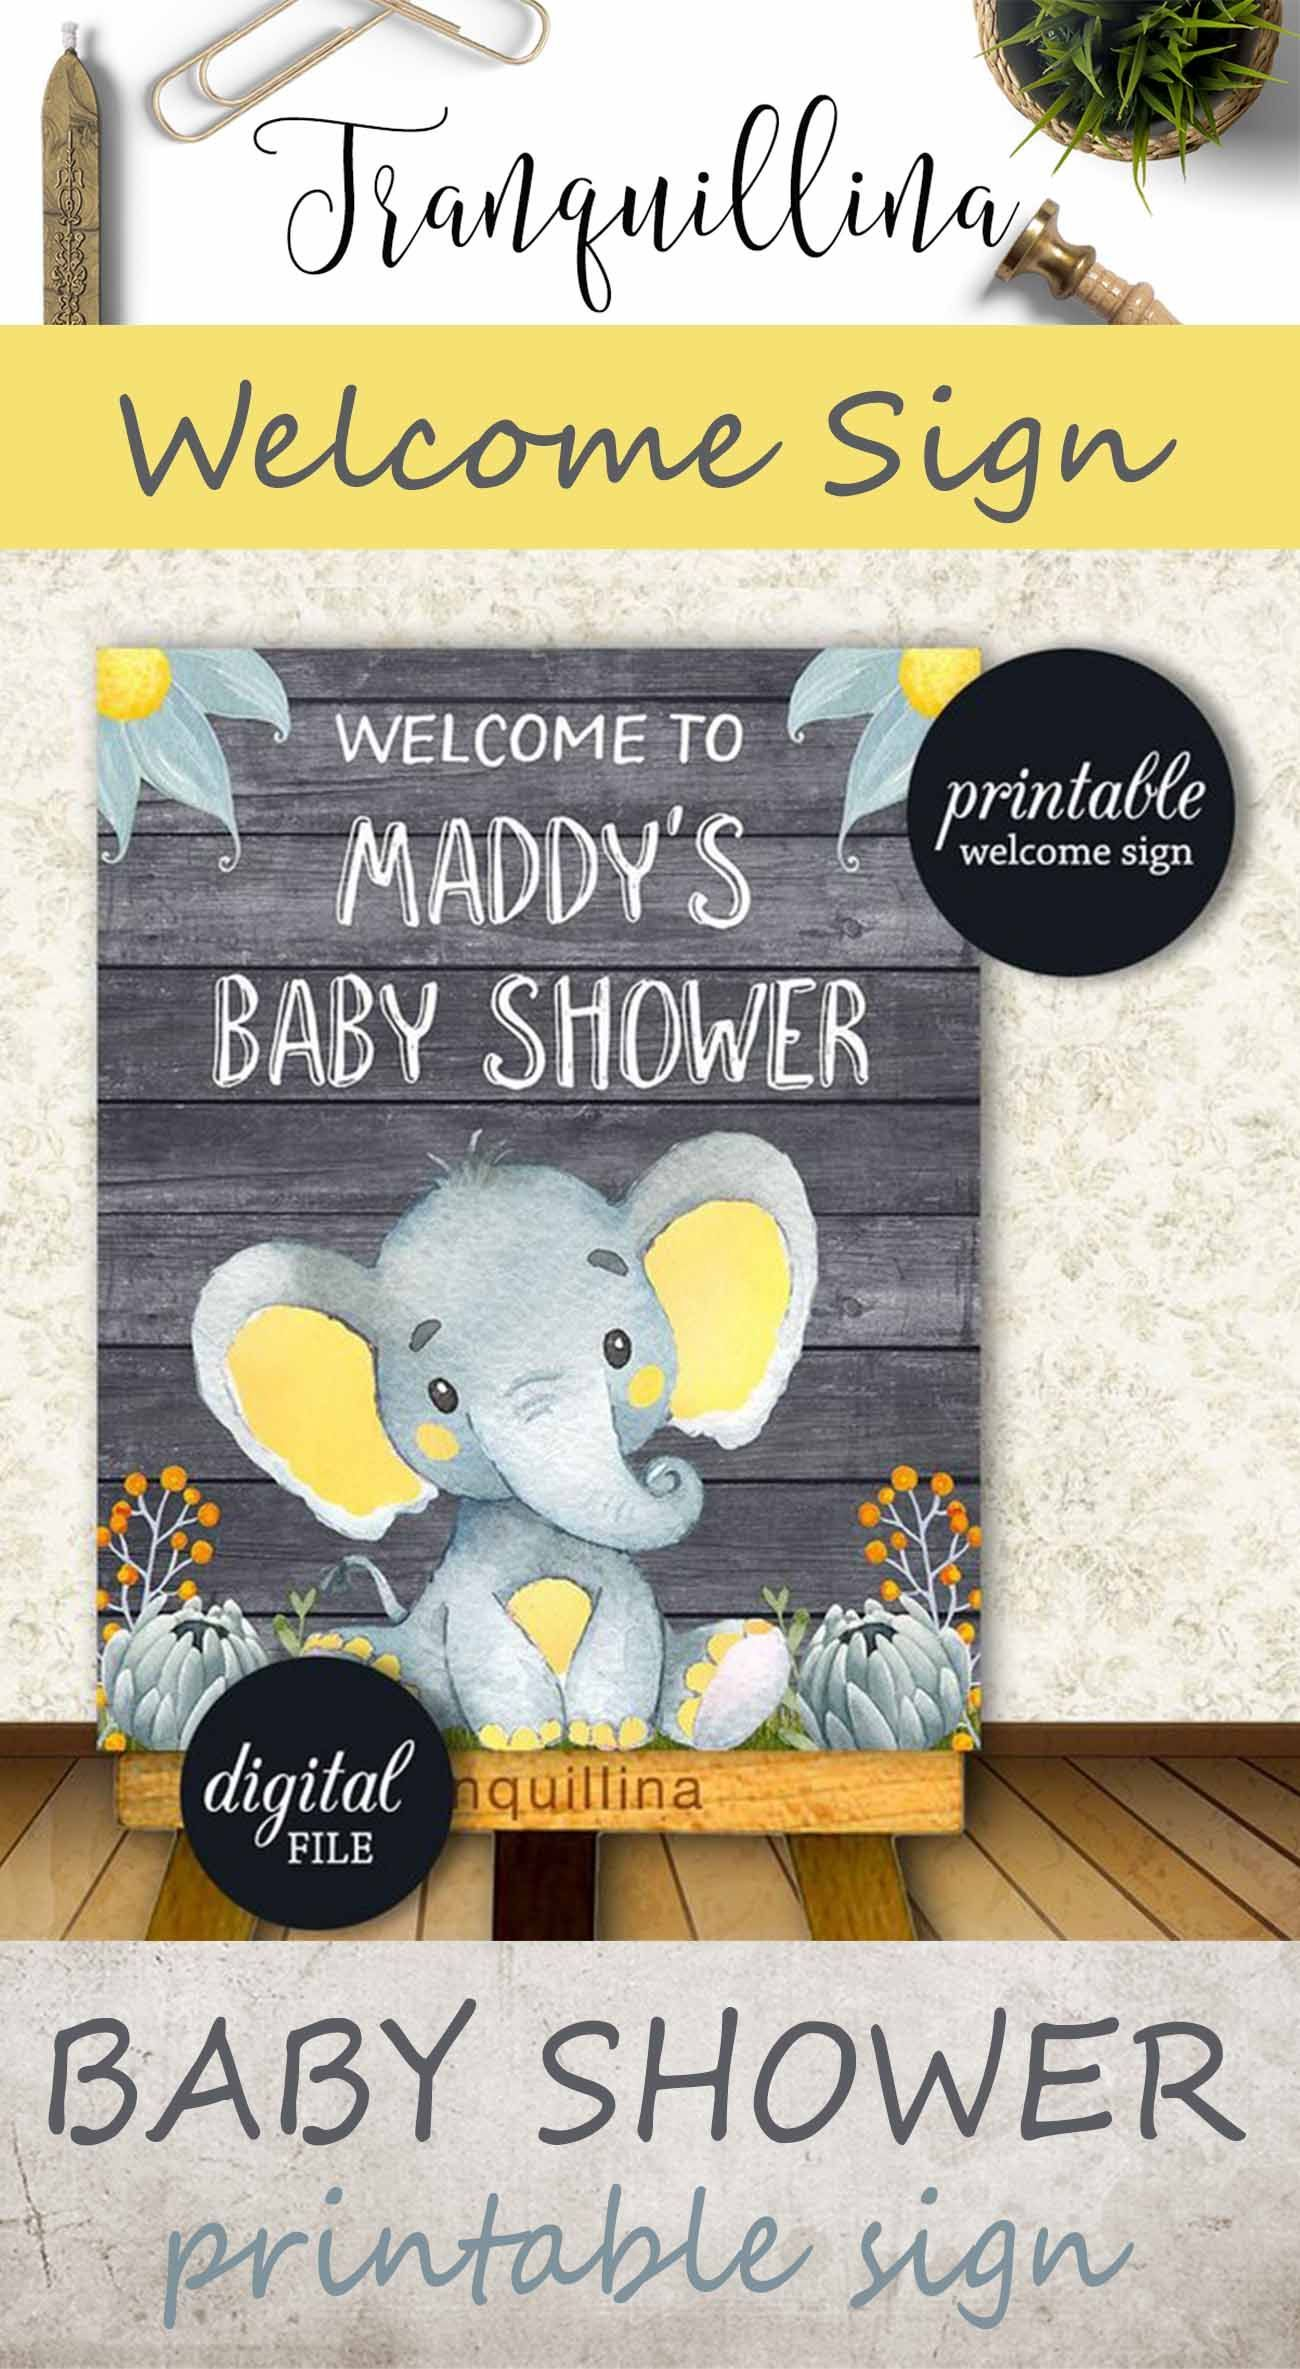 Baby shower welcome sign printable Customized welcome sign Elephant jungle baby shower decor Safari theme shower shower ideas shower trends